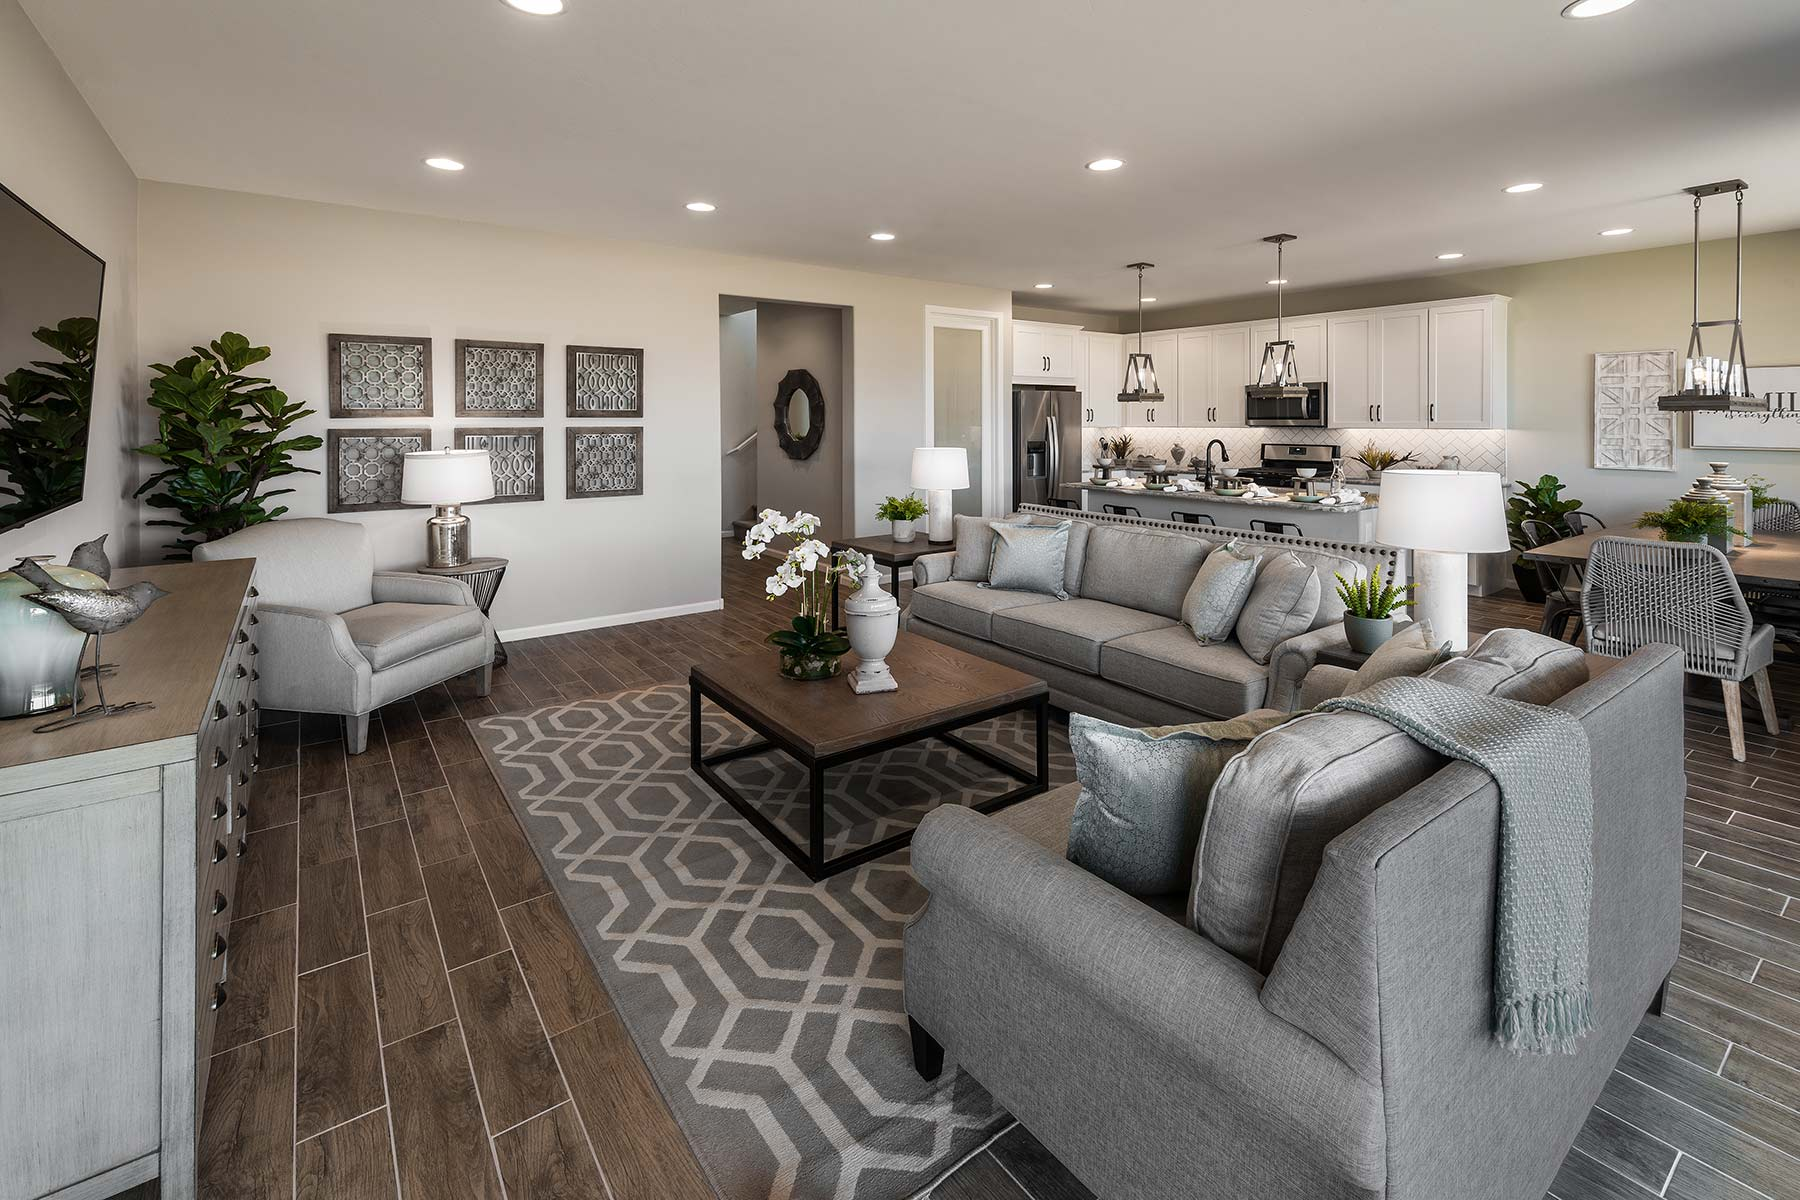 Mesquite Plan Greatroom at Saguaro Trails in Tucson Arizona by Mattamy Homes